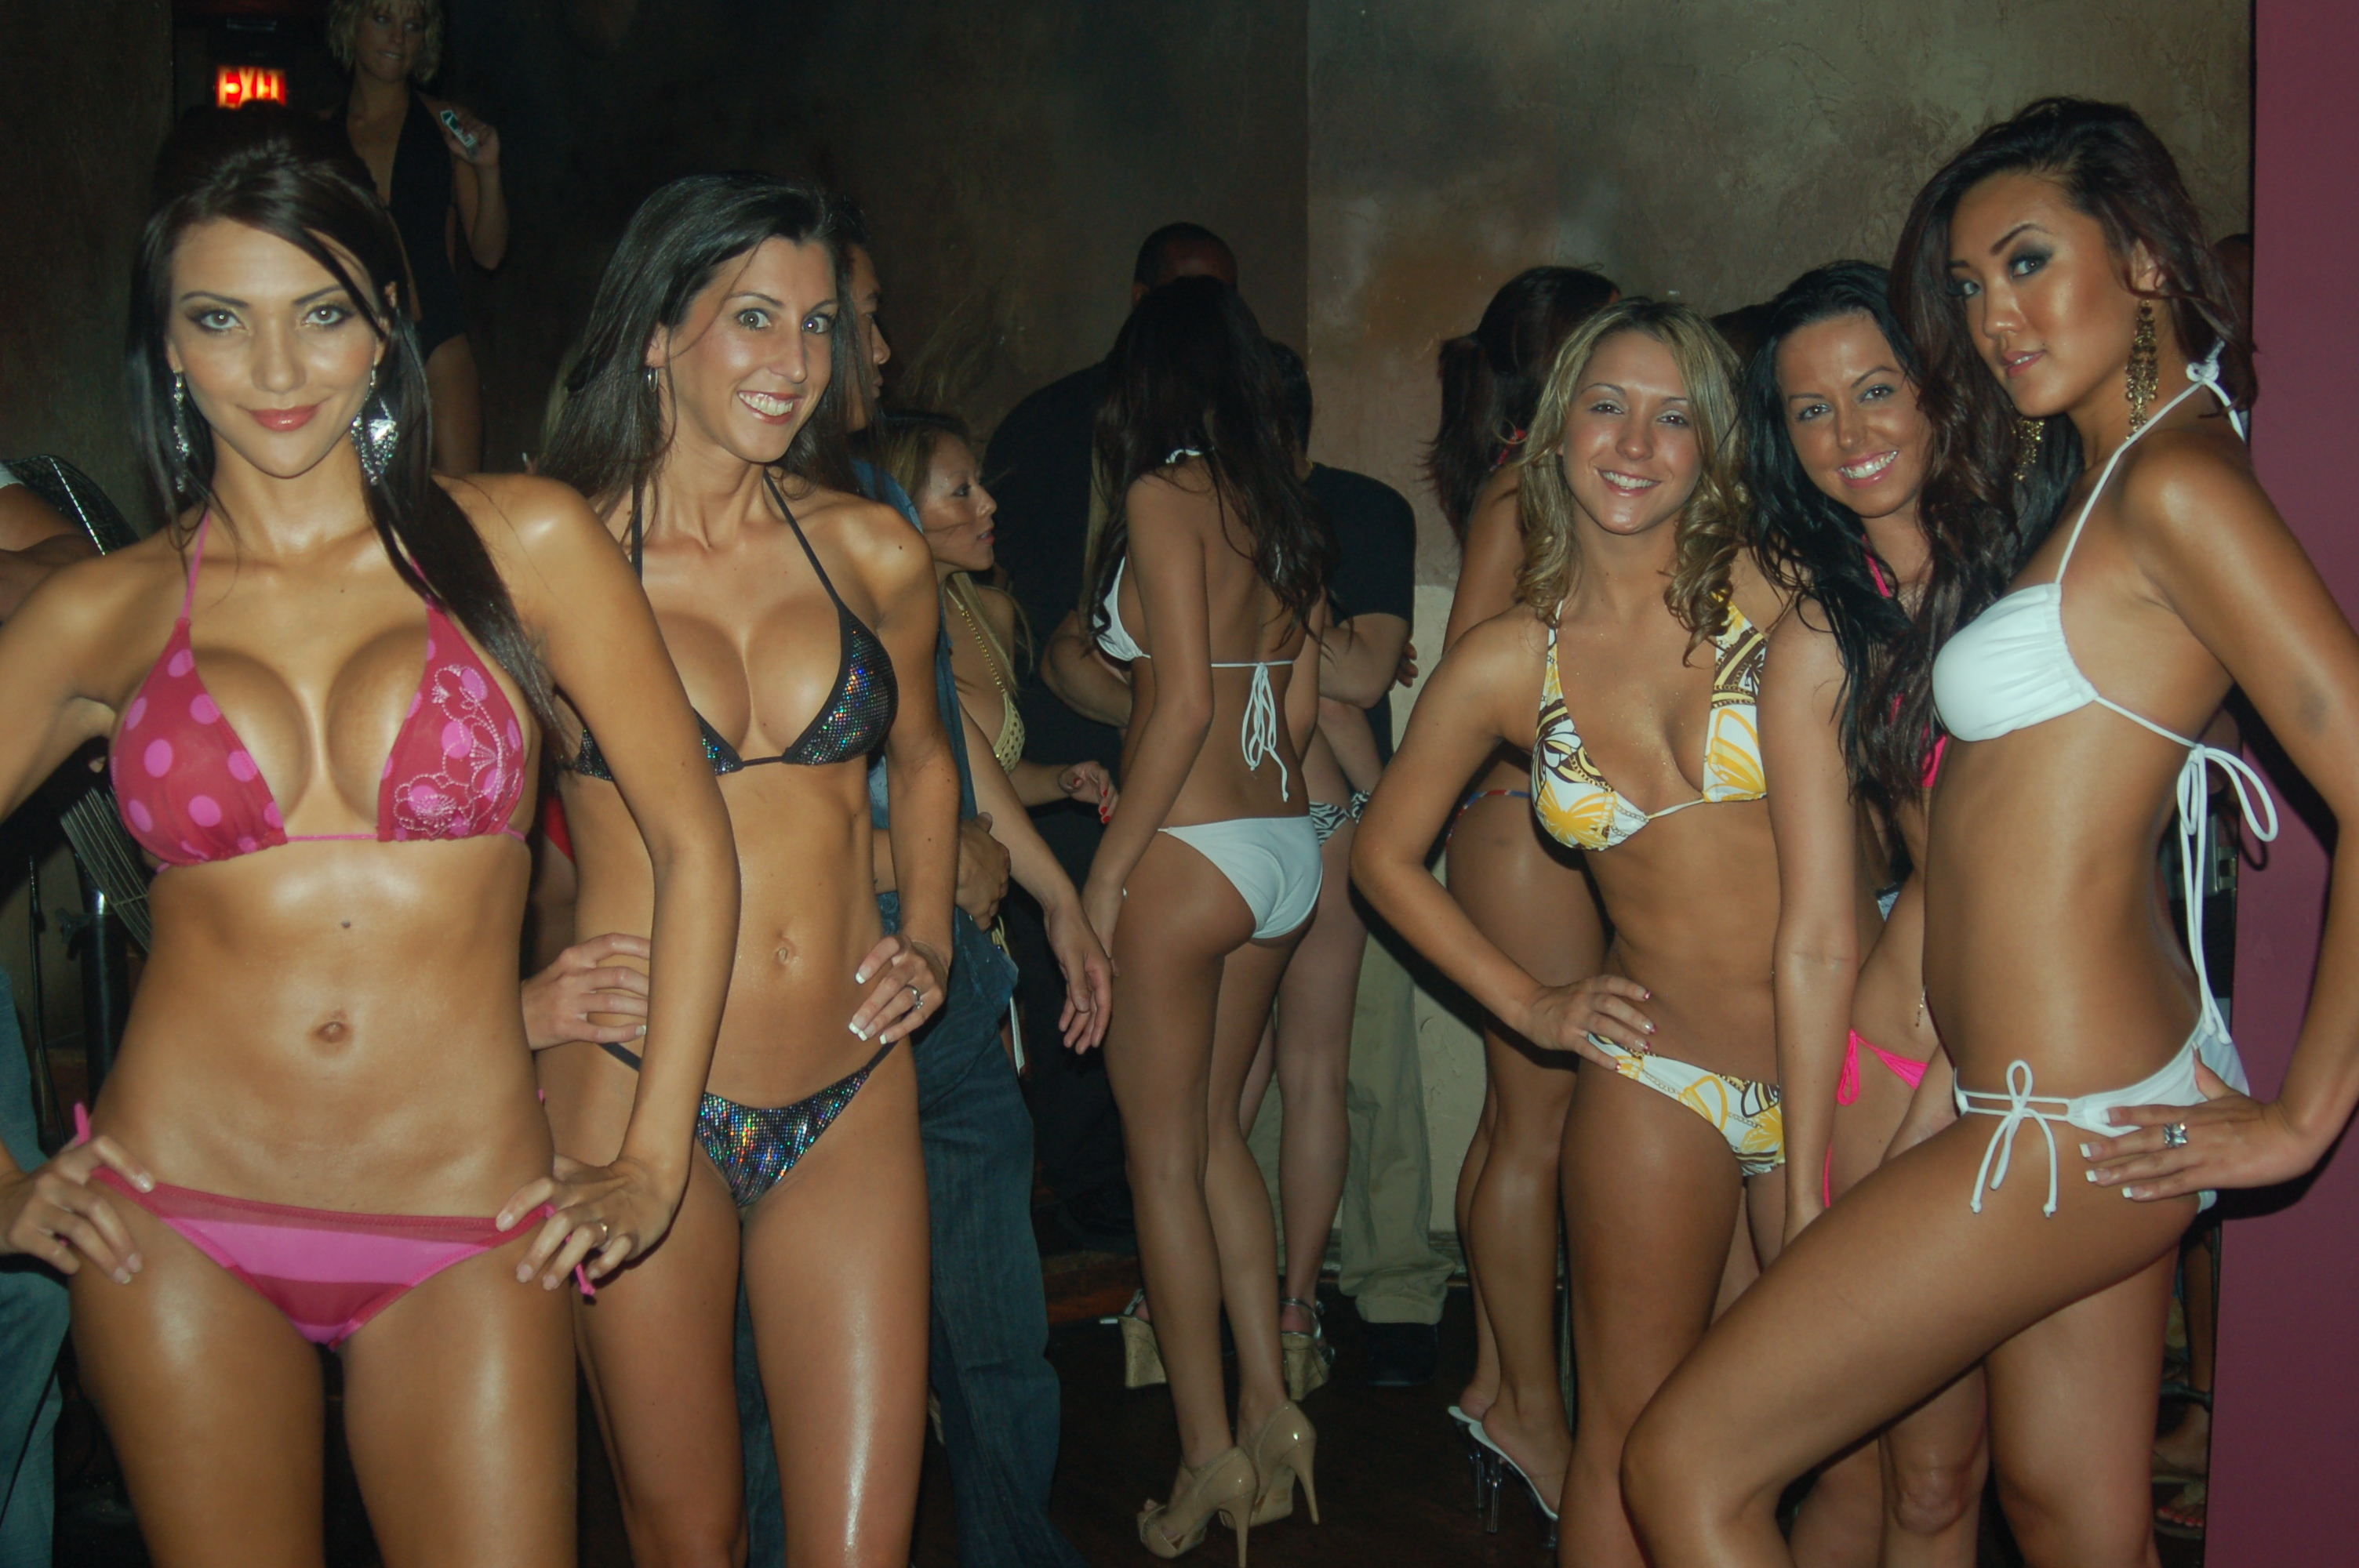 Description Bridges Bikini Contest 54.jpg